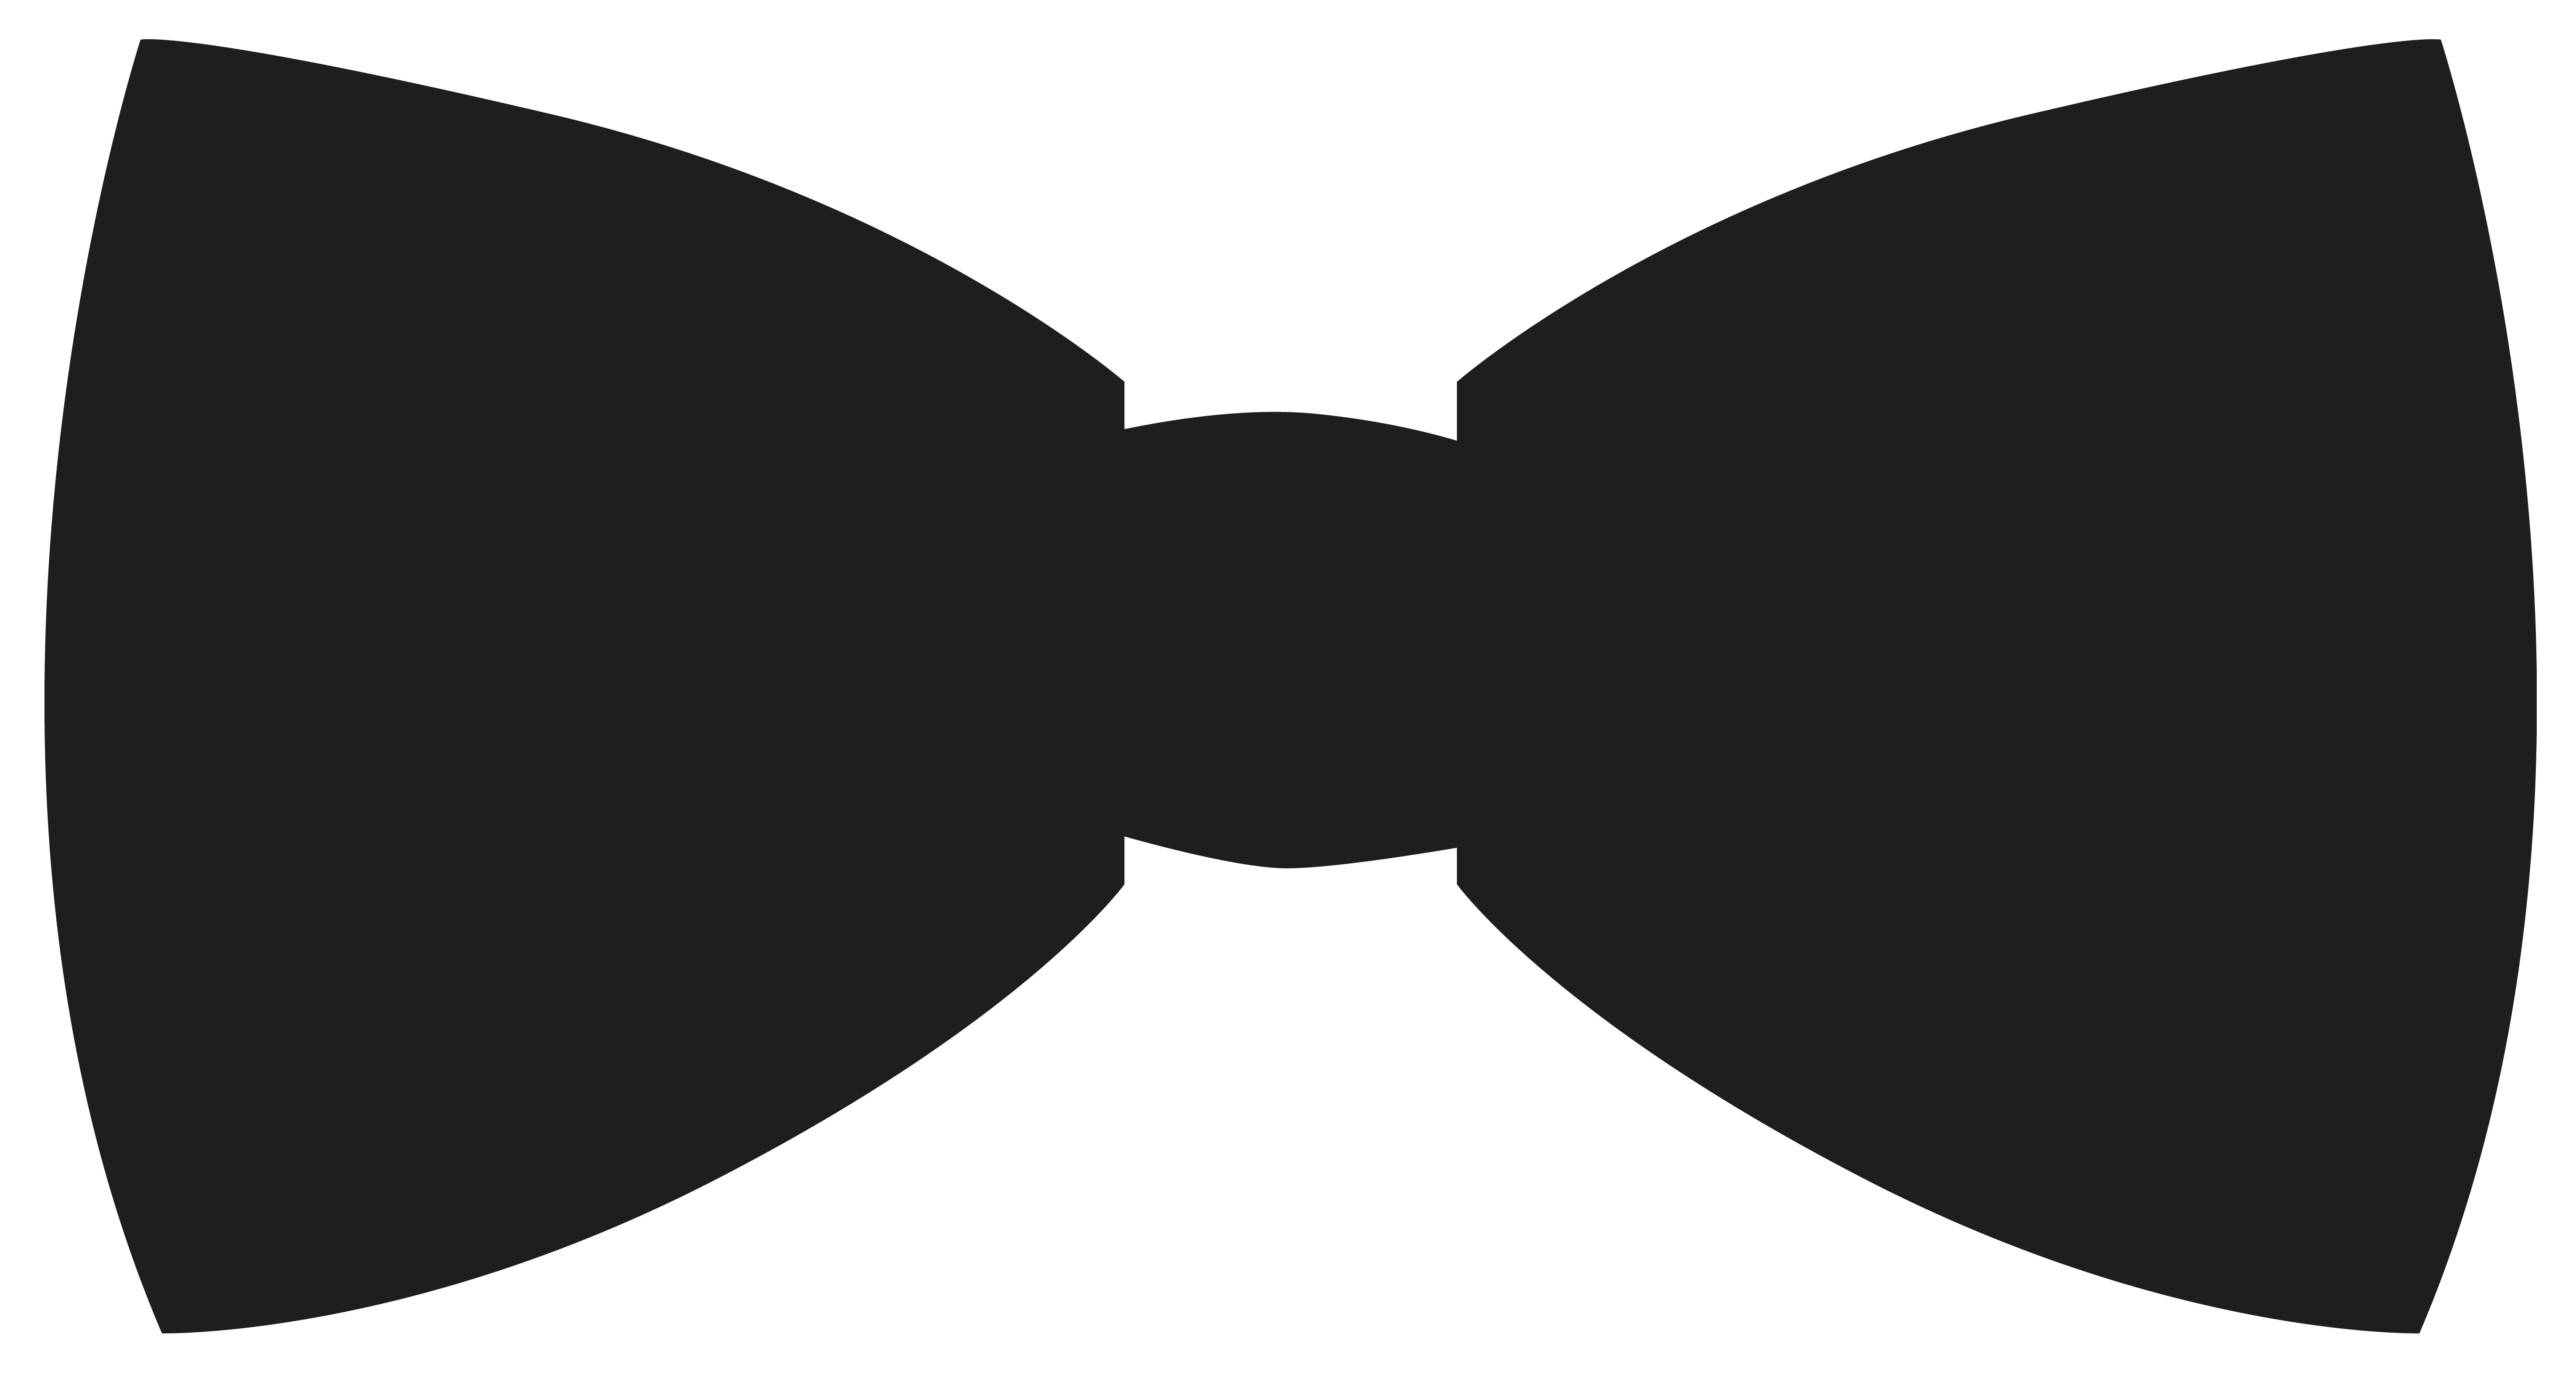 Movember bowtie png image. Fiesta clipart blanket mexican